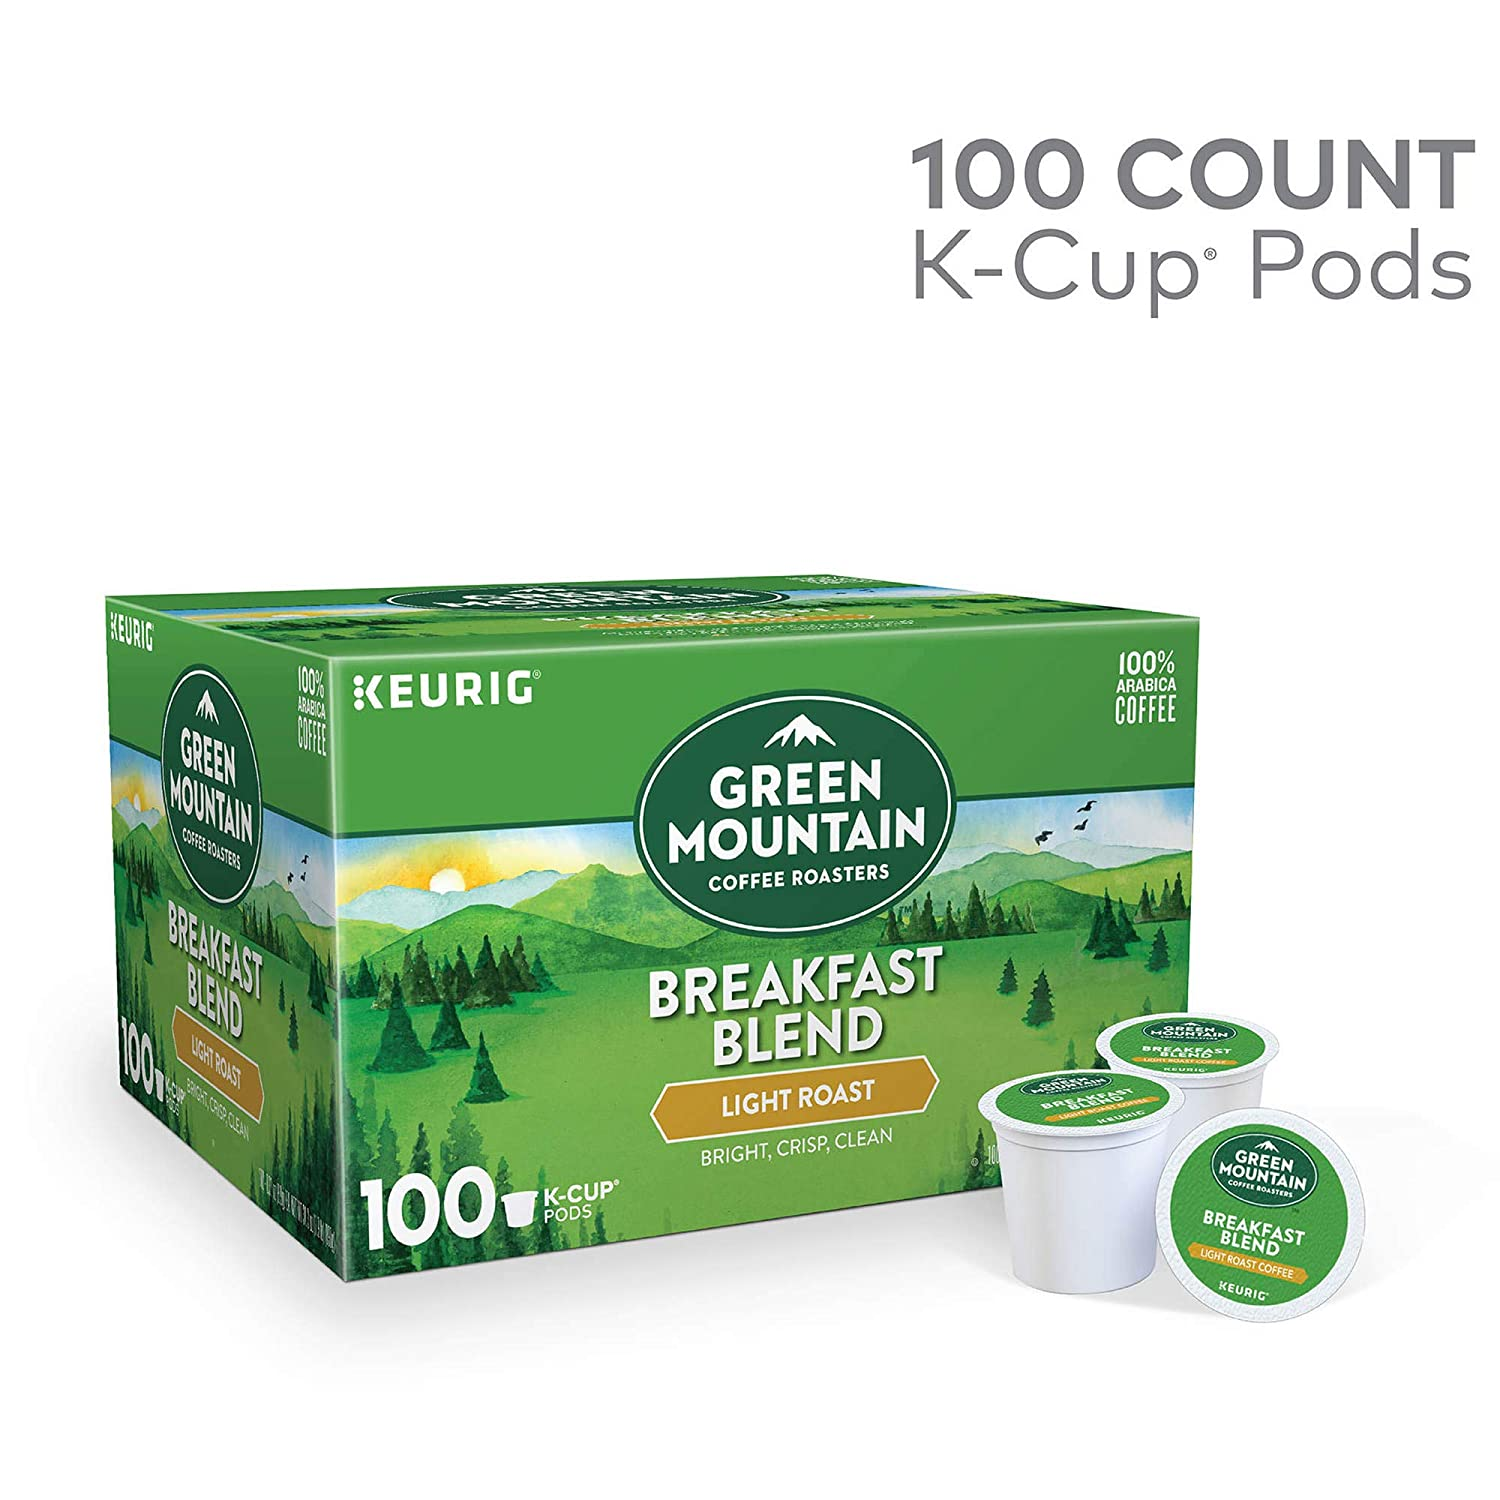 Green Mountain Coffee Roasters Breakfast Blend Light Roast Coffee Single-Serve Pods, 100 Count